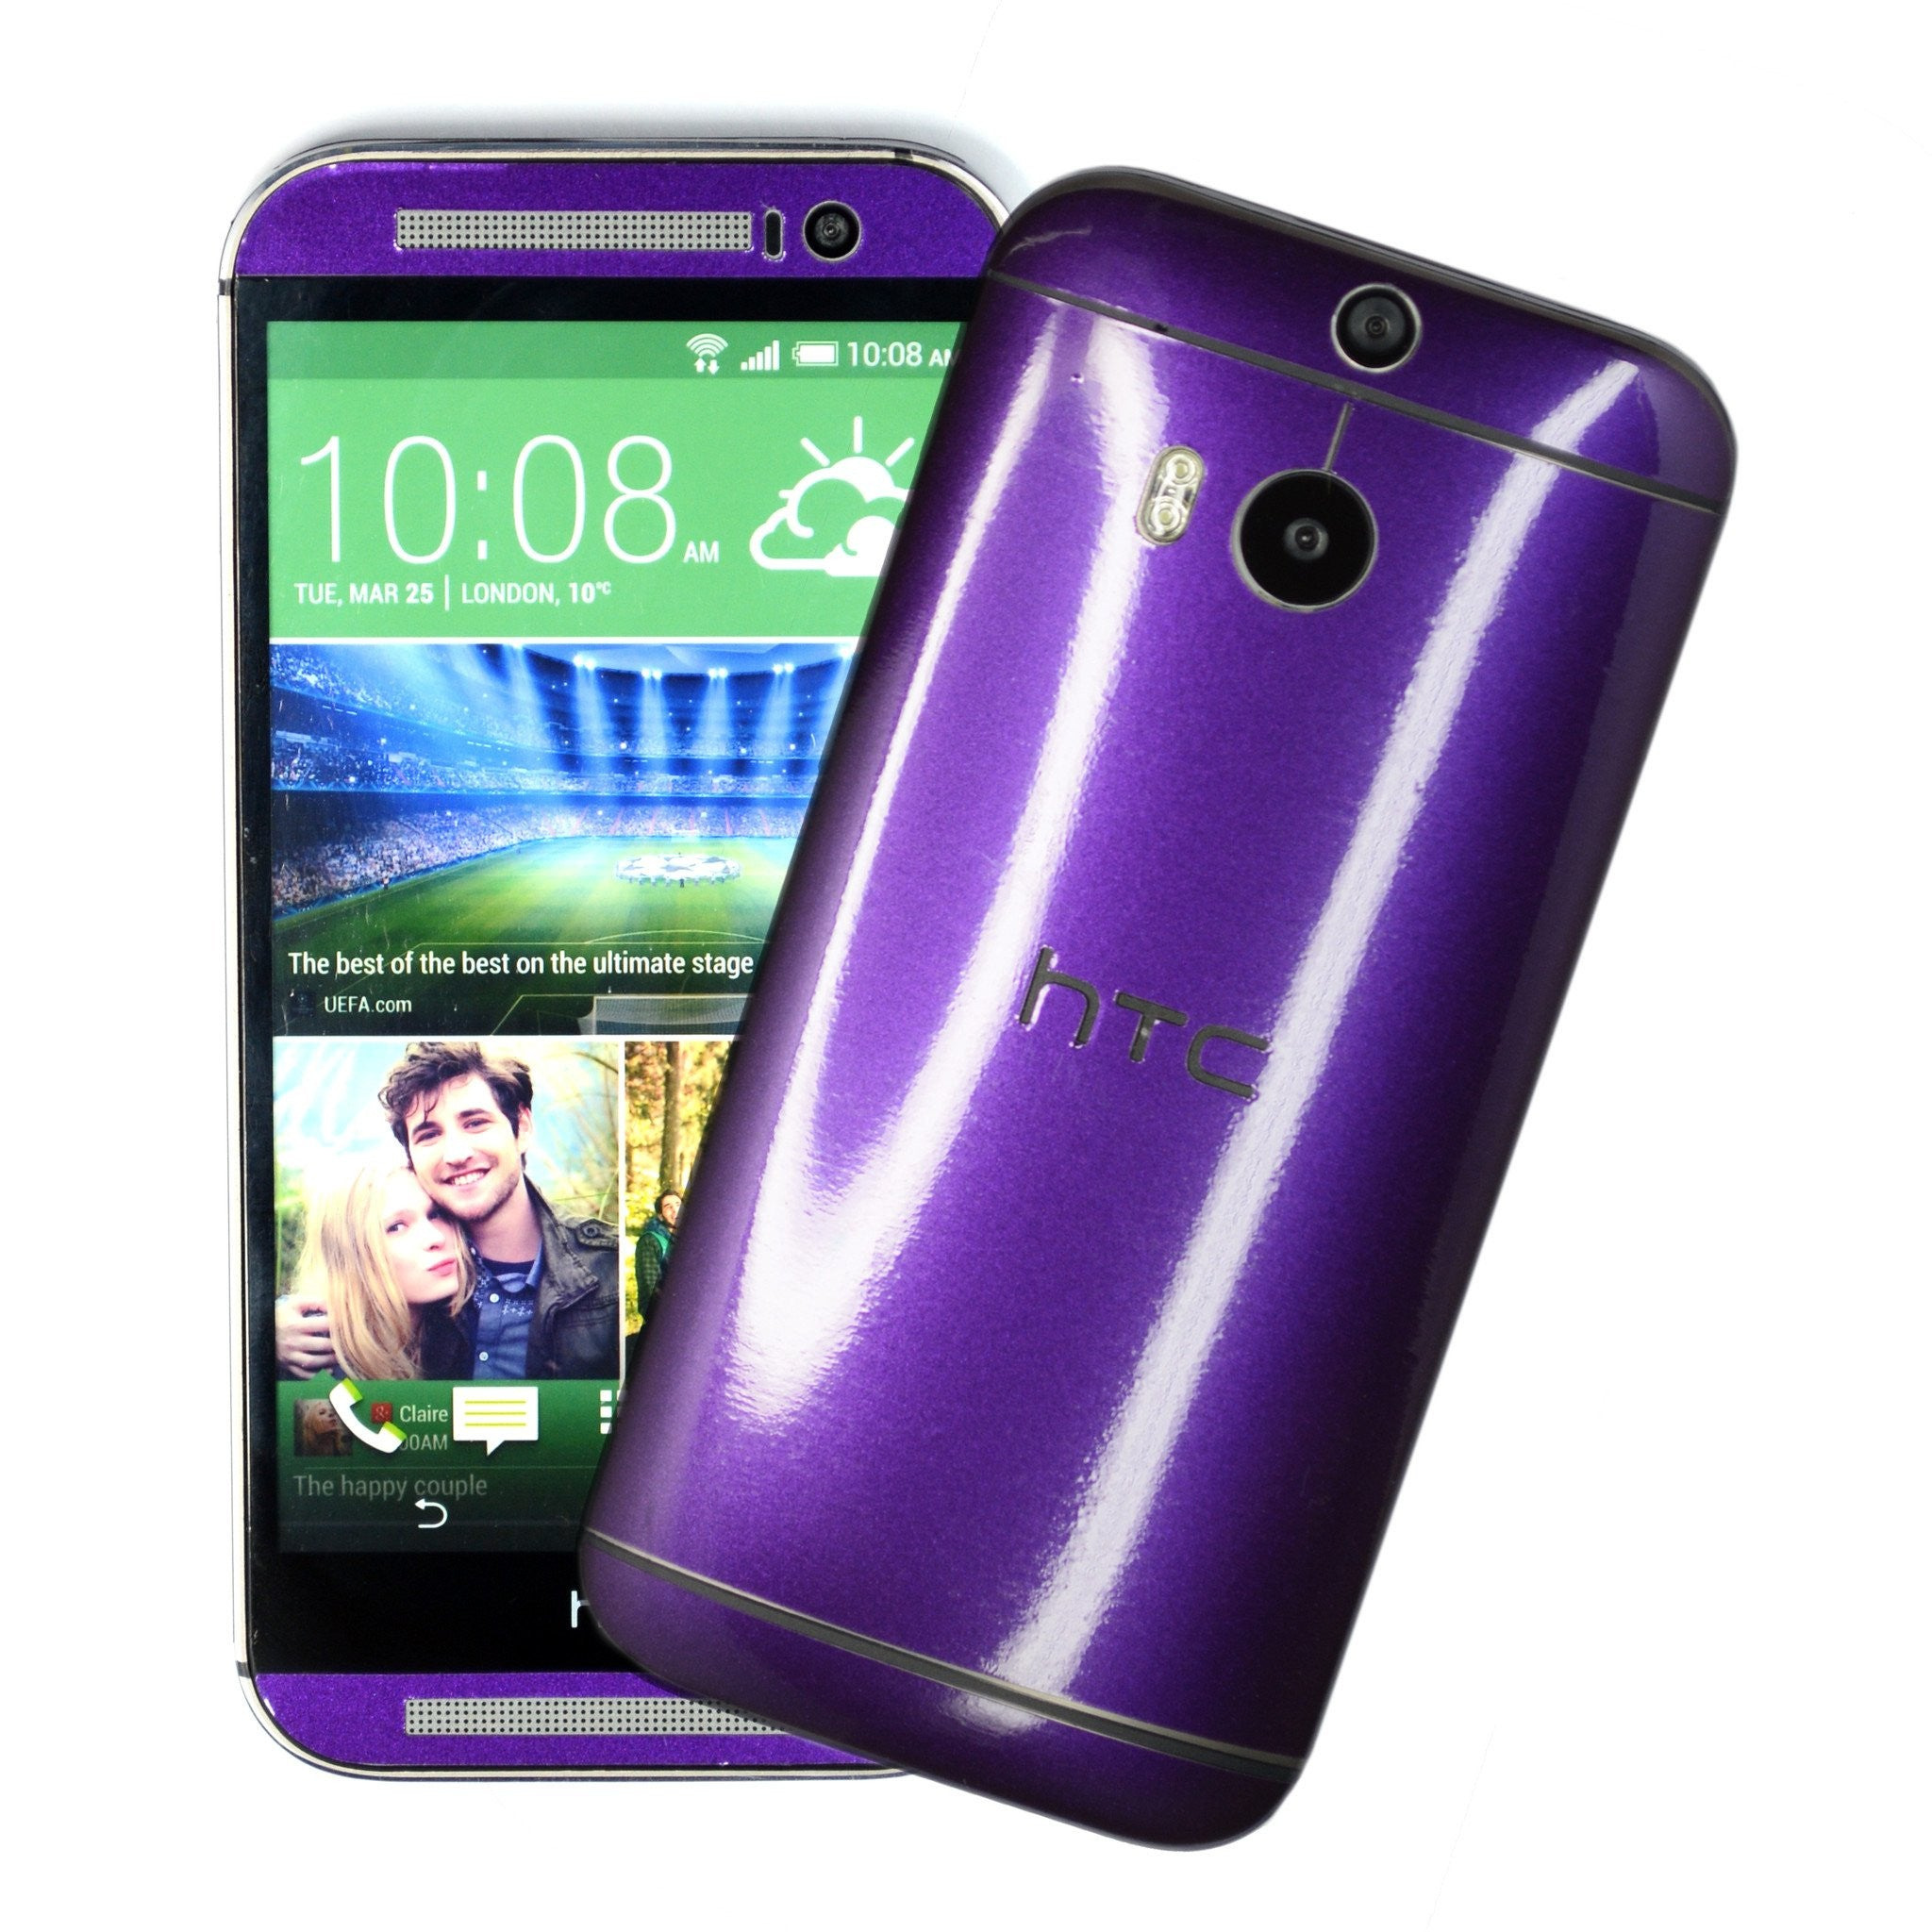 HTC One M8 purple blue chameleon skin